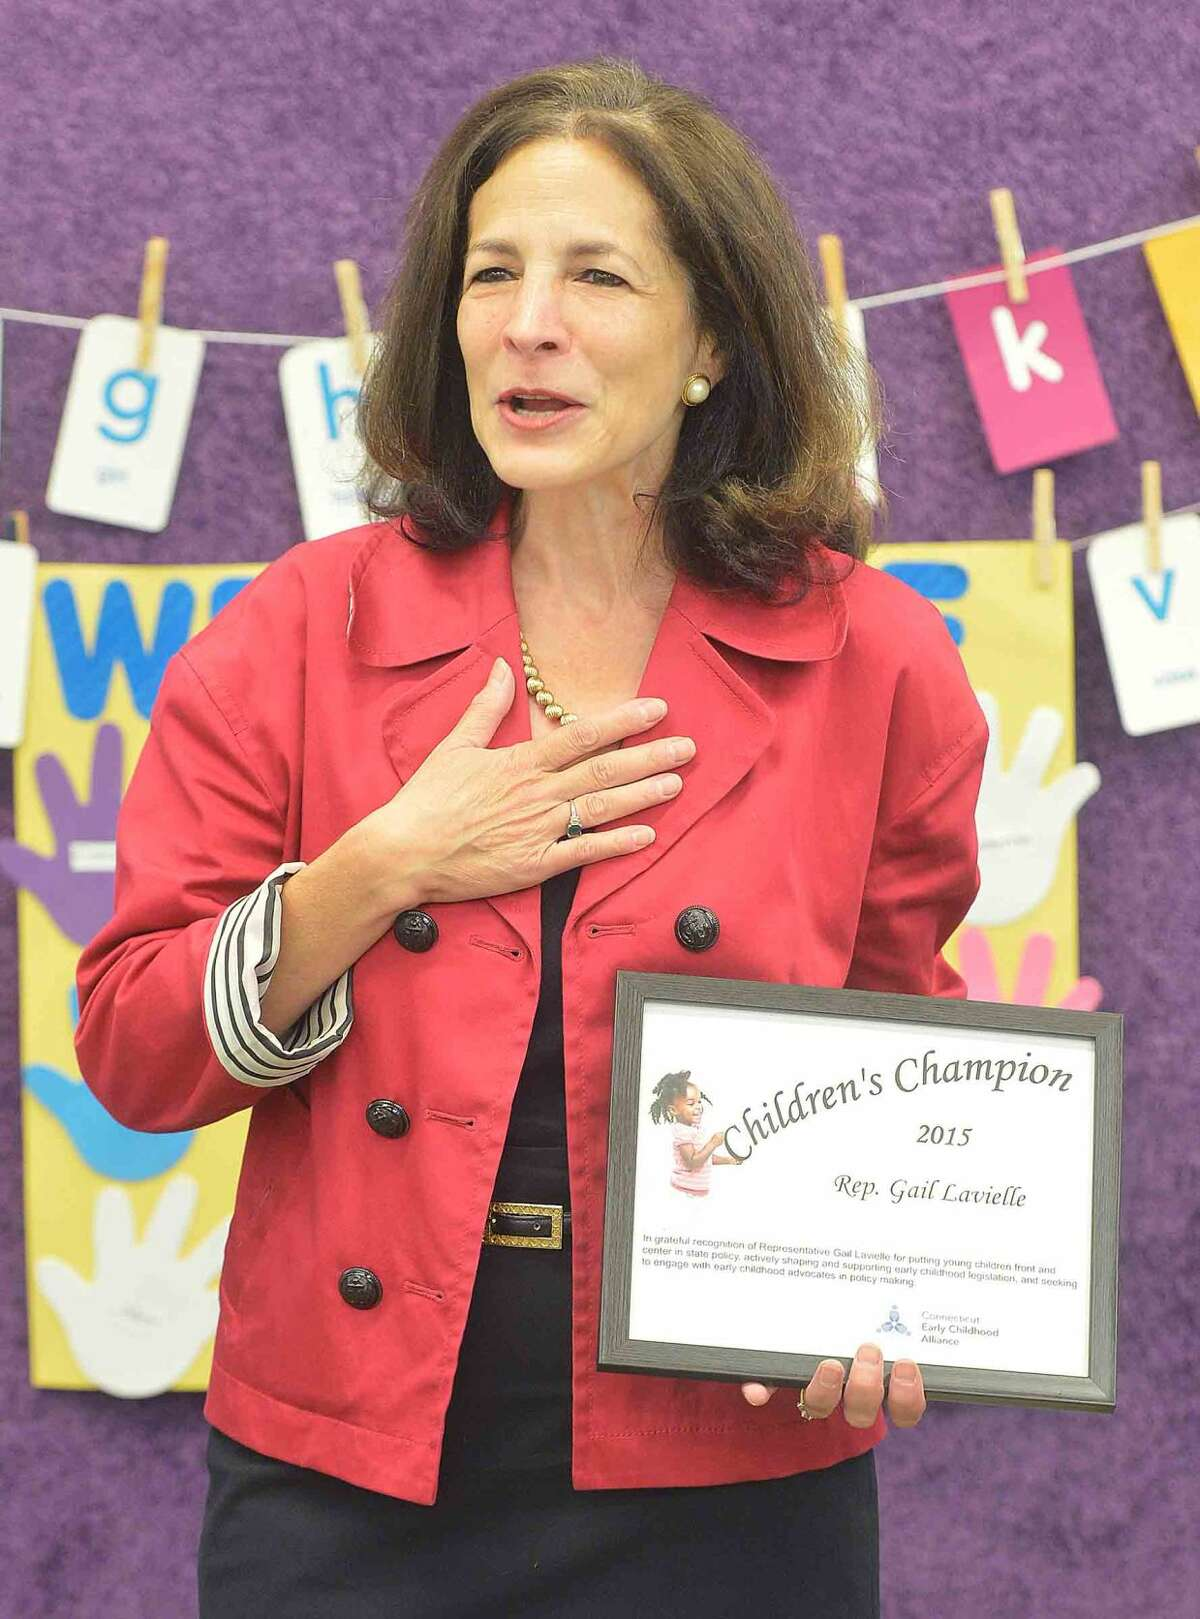 Hour Photo/Alex von Kleydorff In this file photo, State Rep Gail lavielle accepts a Childrens Champion award at the Naramake Family Resource Center